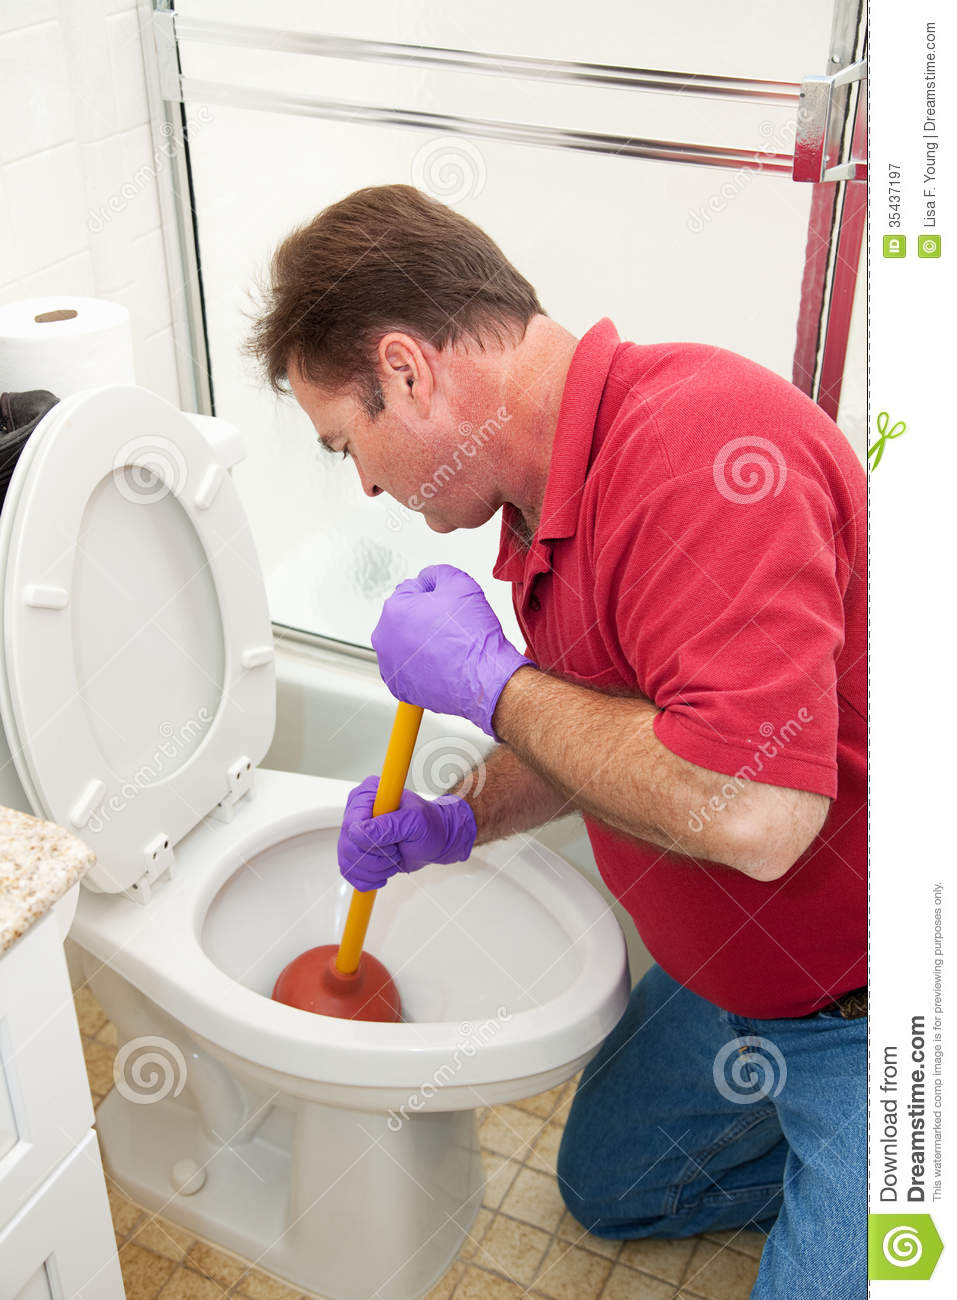 man using plunger in toilet royalty free stock photography image 35437197. Black Bedroom Furniture Sets. Home Design Ideas